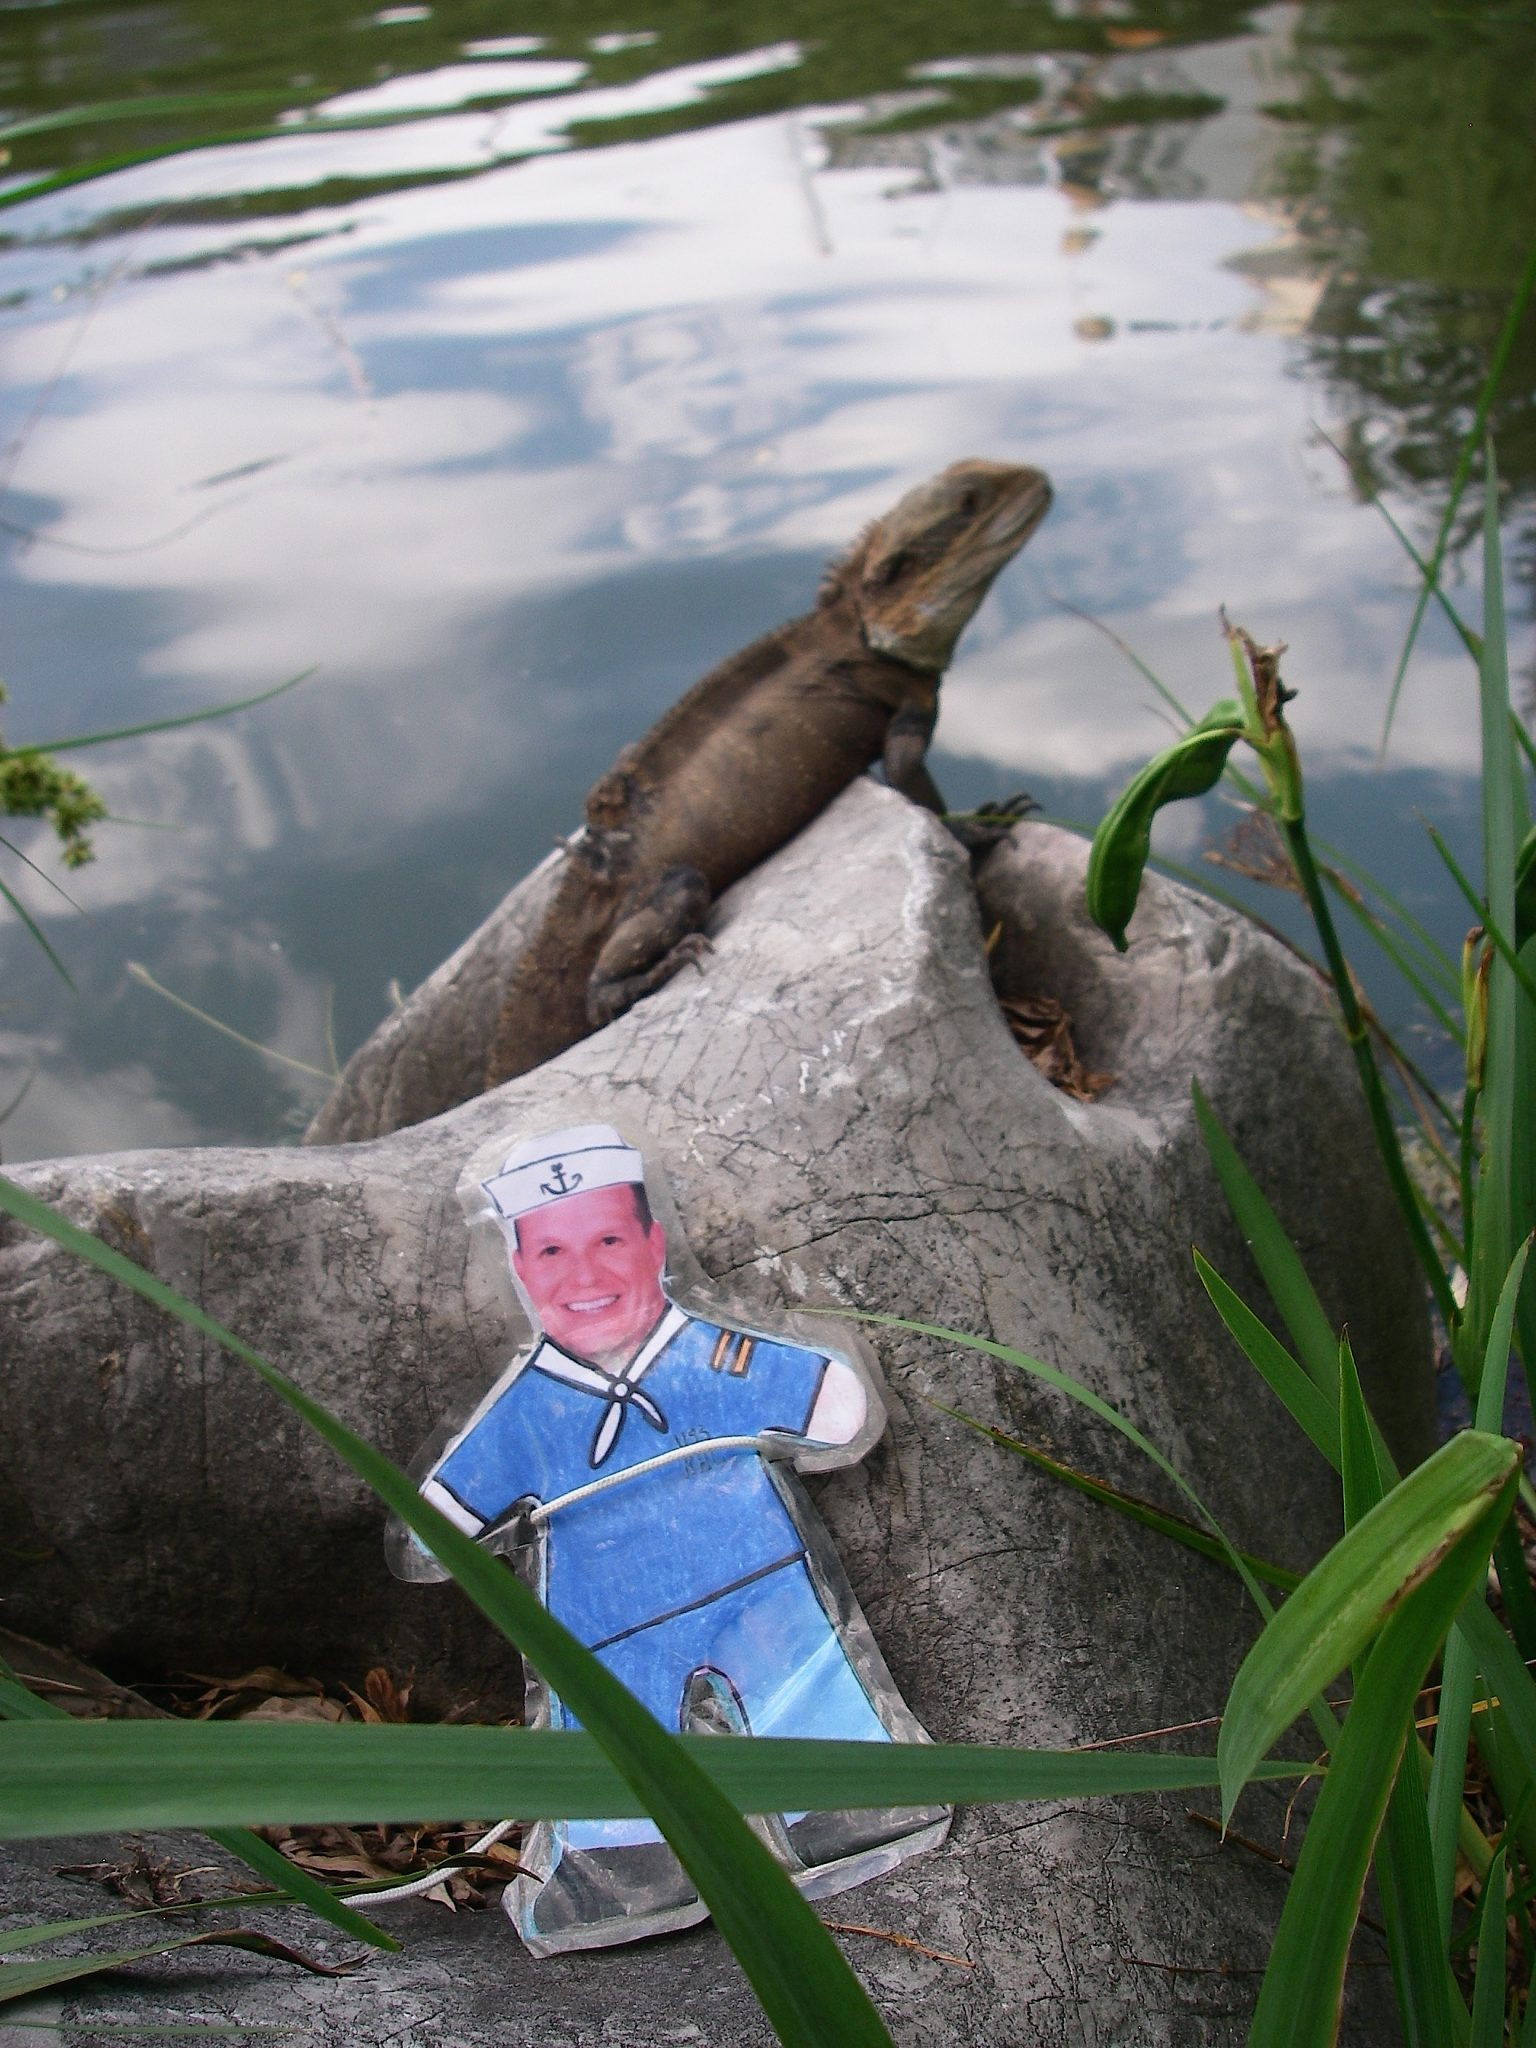 68.2. Flat Mr. Davis saw a wild lizard in a pond at the Chinese Garden in Sydney, Australia